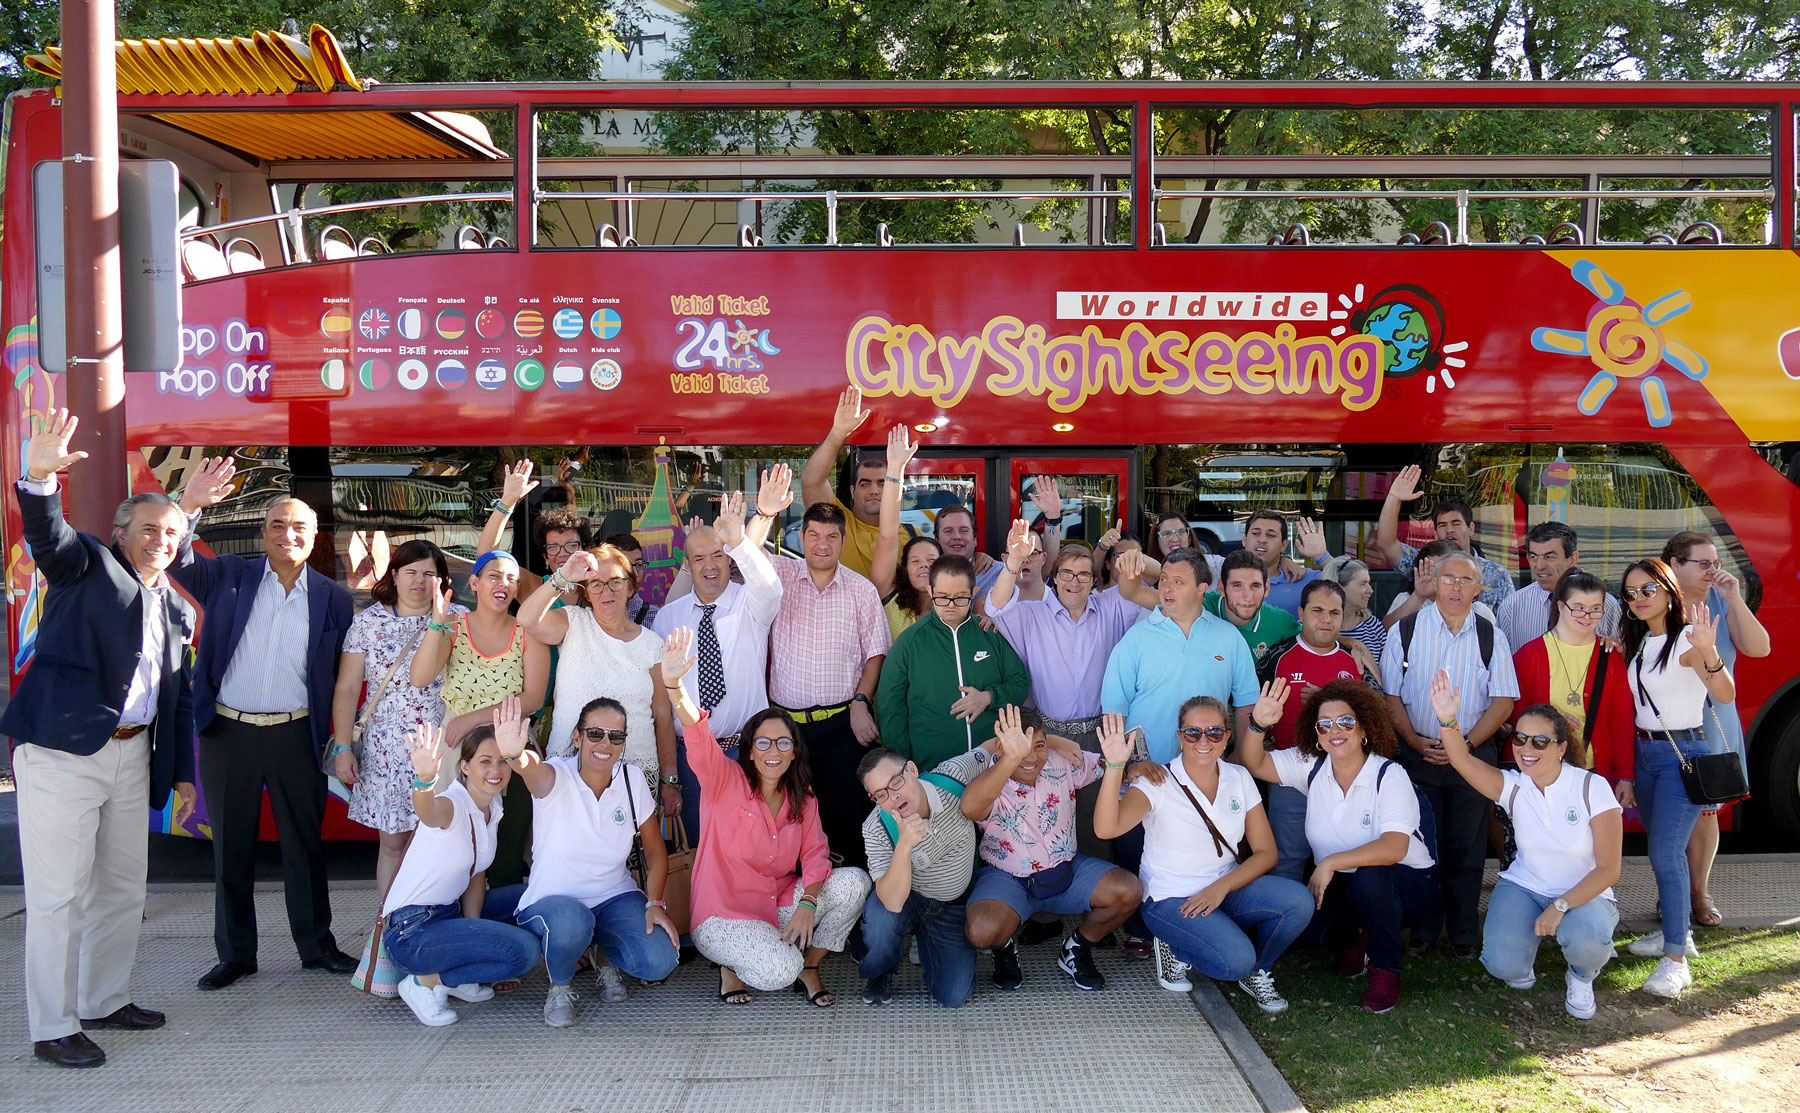 city sightseeing sevilla tour hdad rocio triana